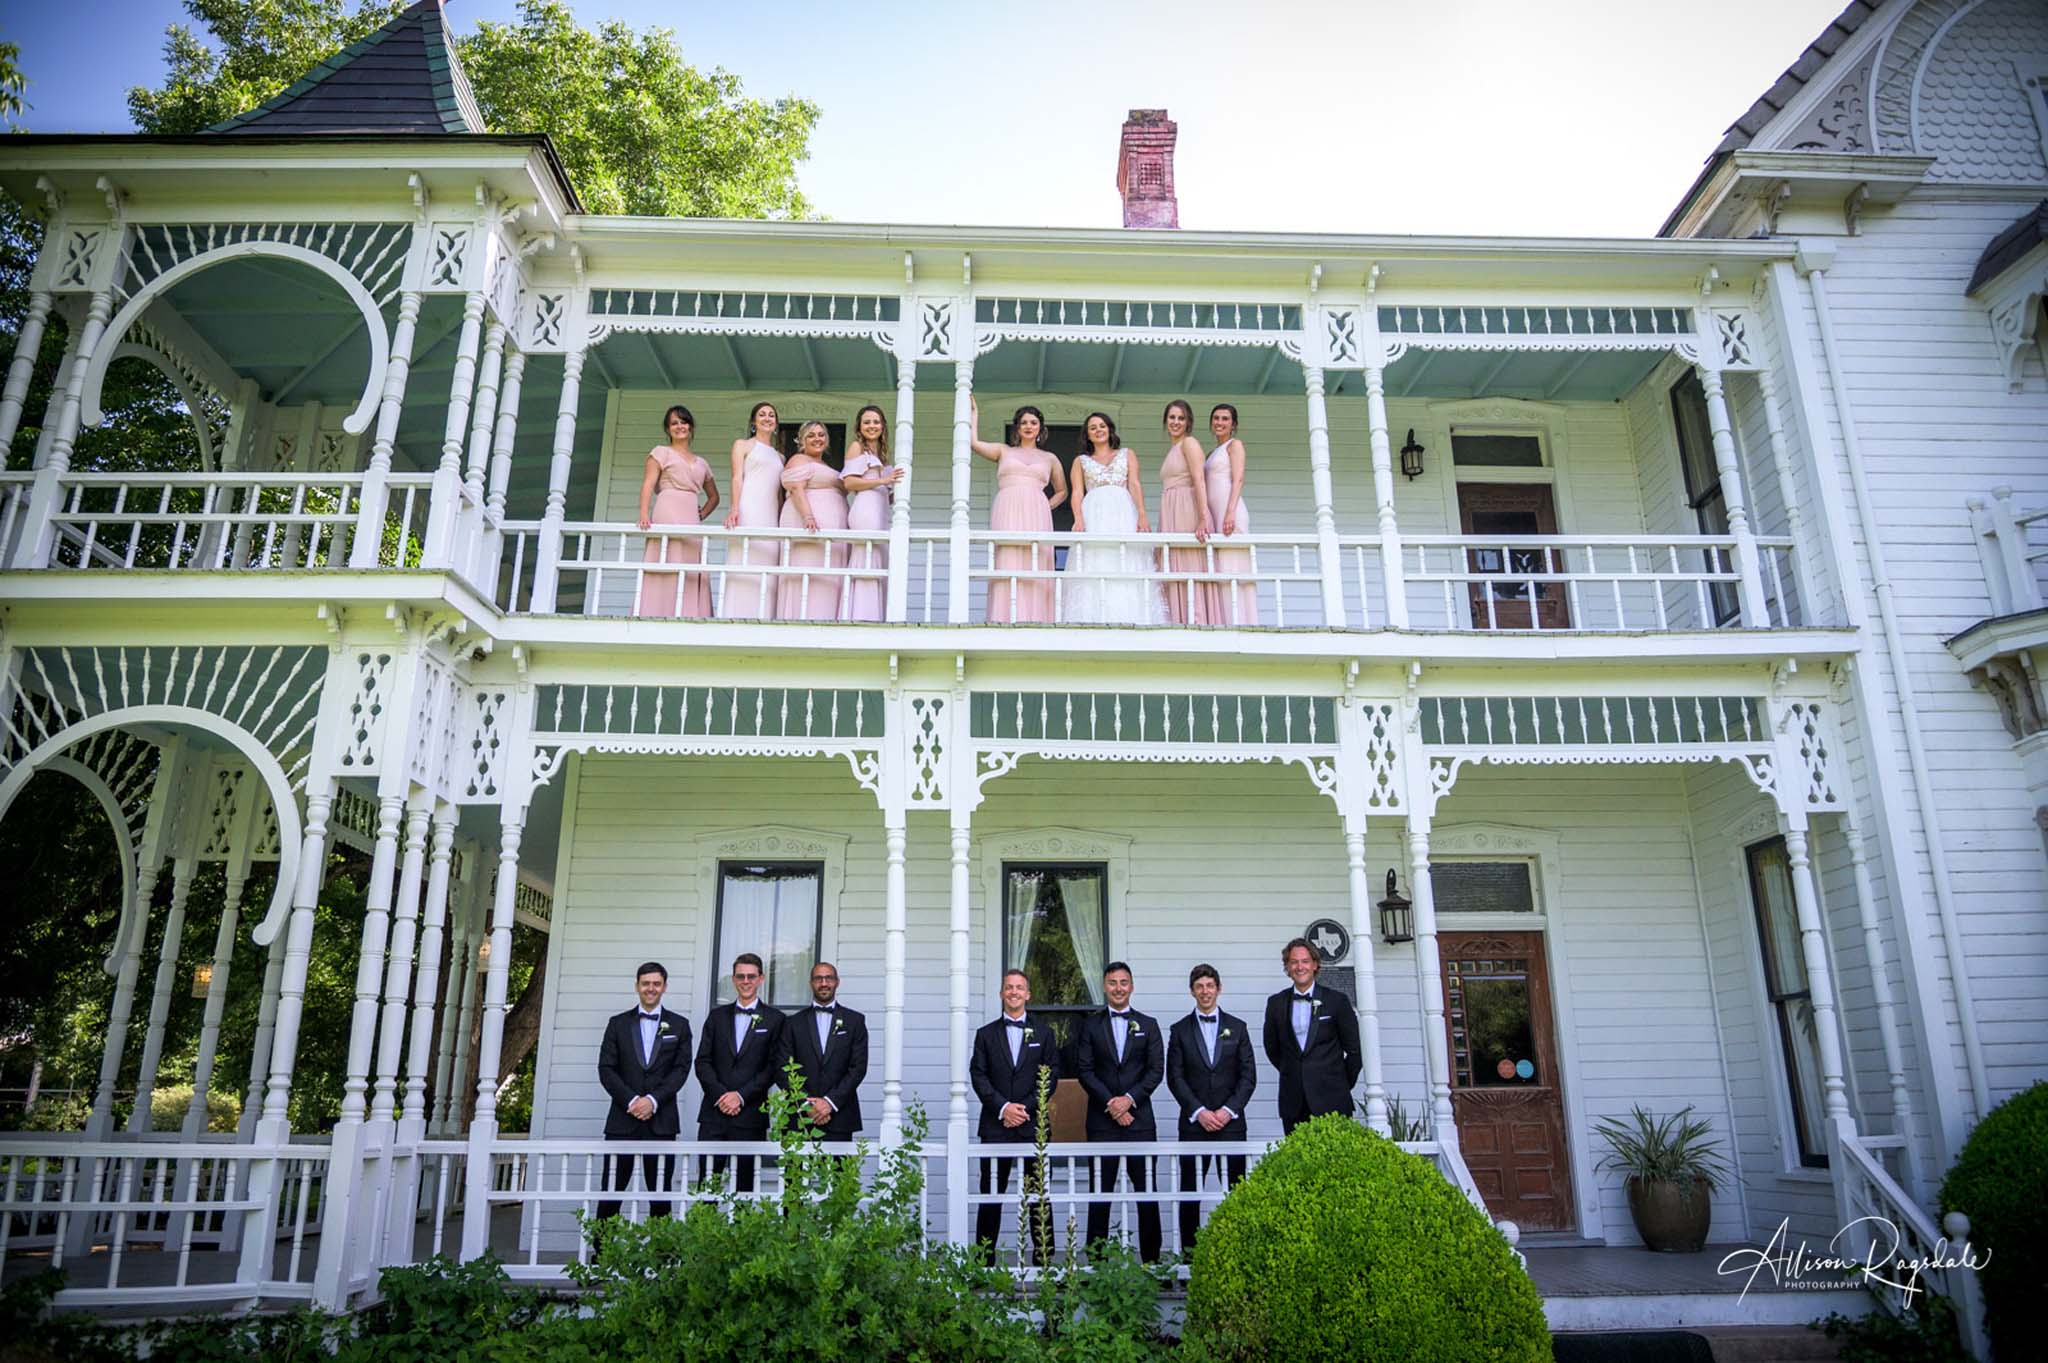 wedding party posing on two stories, bridesmaids on top balcony, groomsmen on bottom